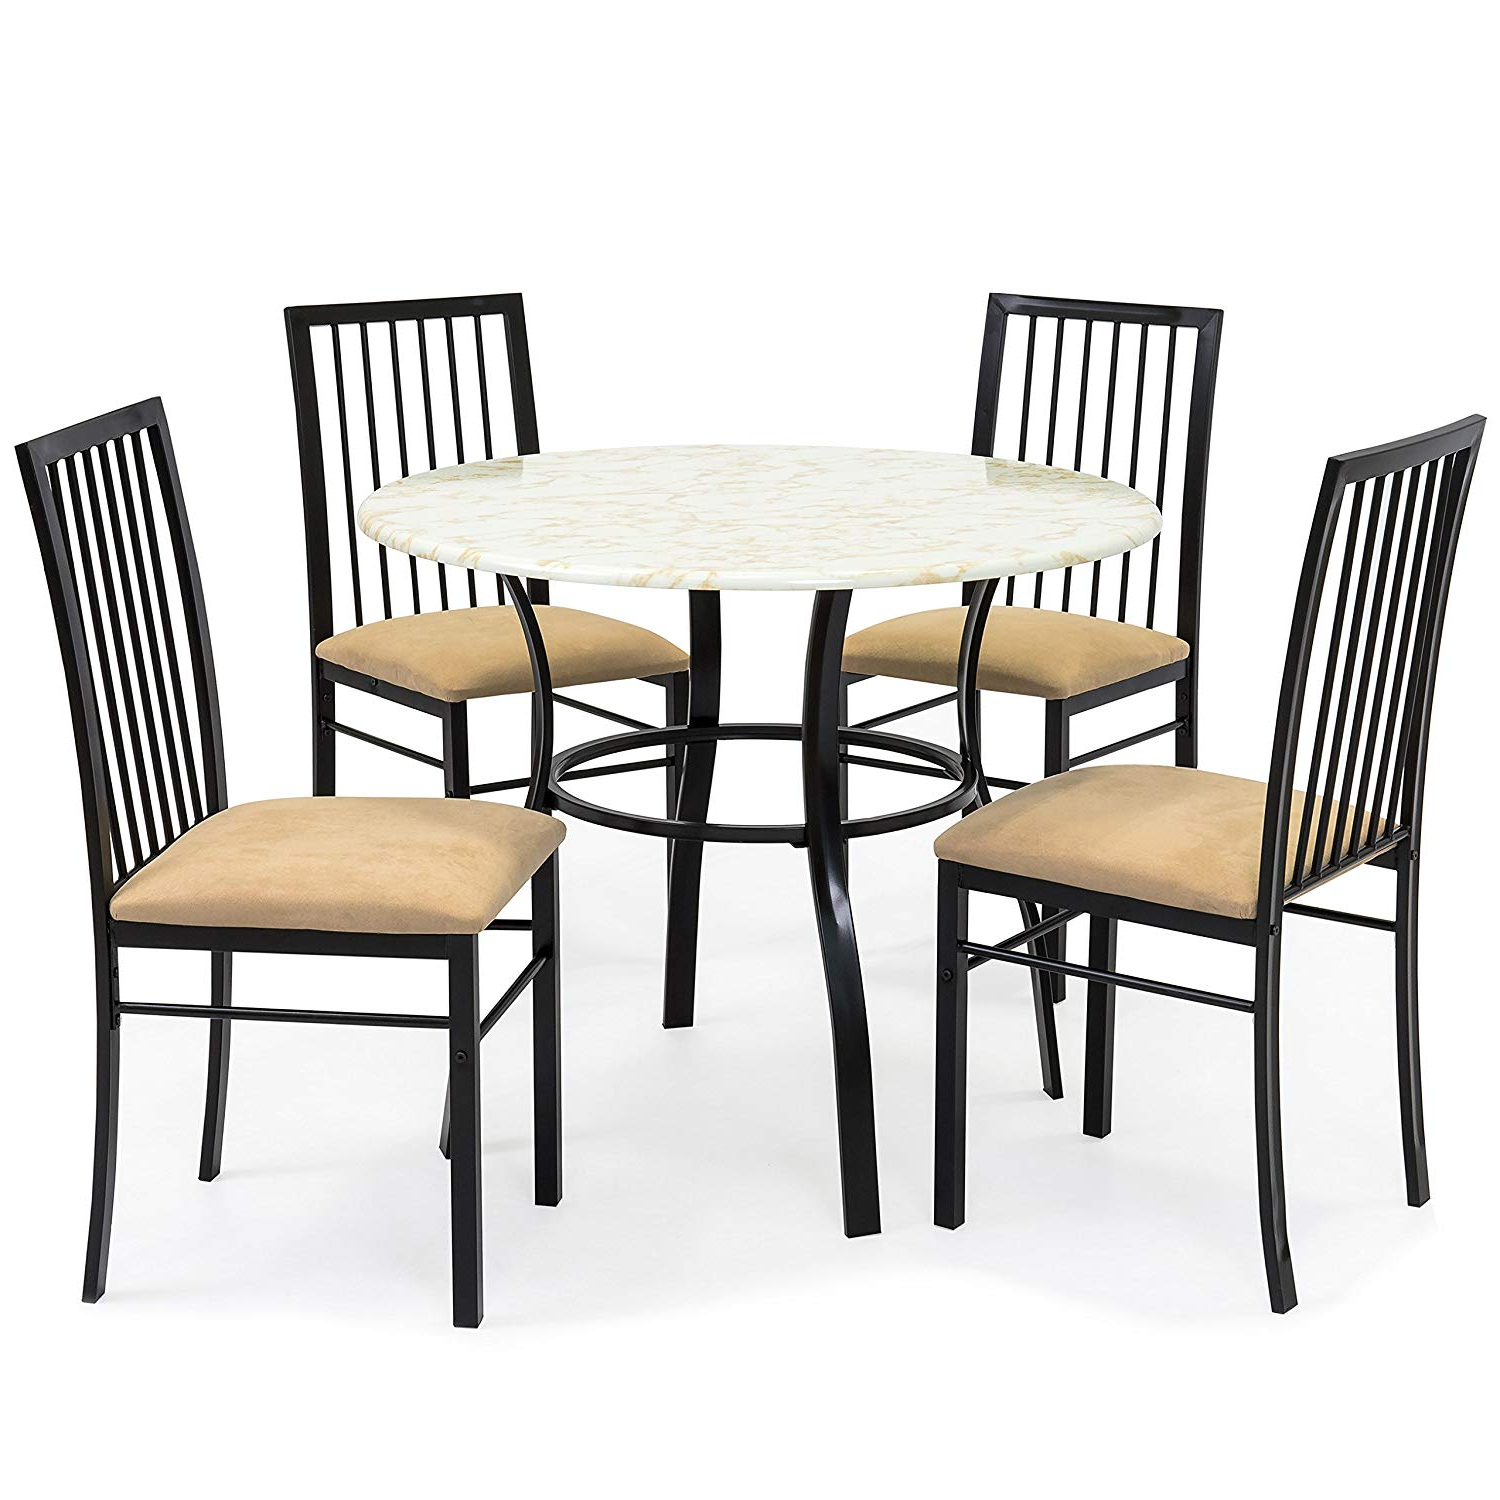 Latest Best Choice Products 5 Piece Faux Marble Top Dining Table And Chairs Set Regarding Evellen 5 Piece Solid Wood Dining Sets (Set Of 5) (Gallery 6 of 20)